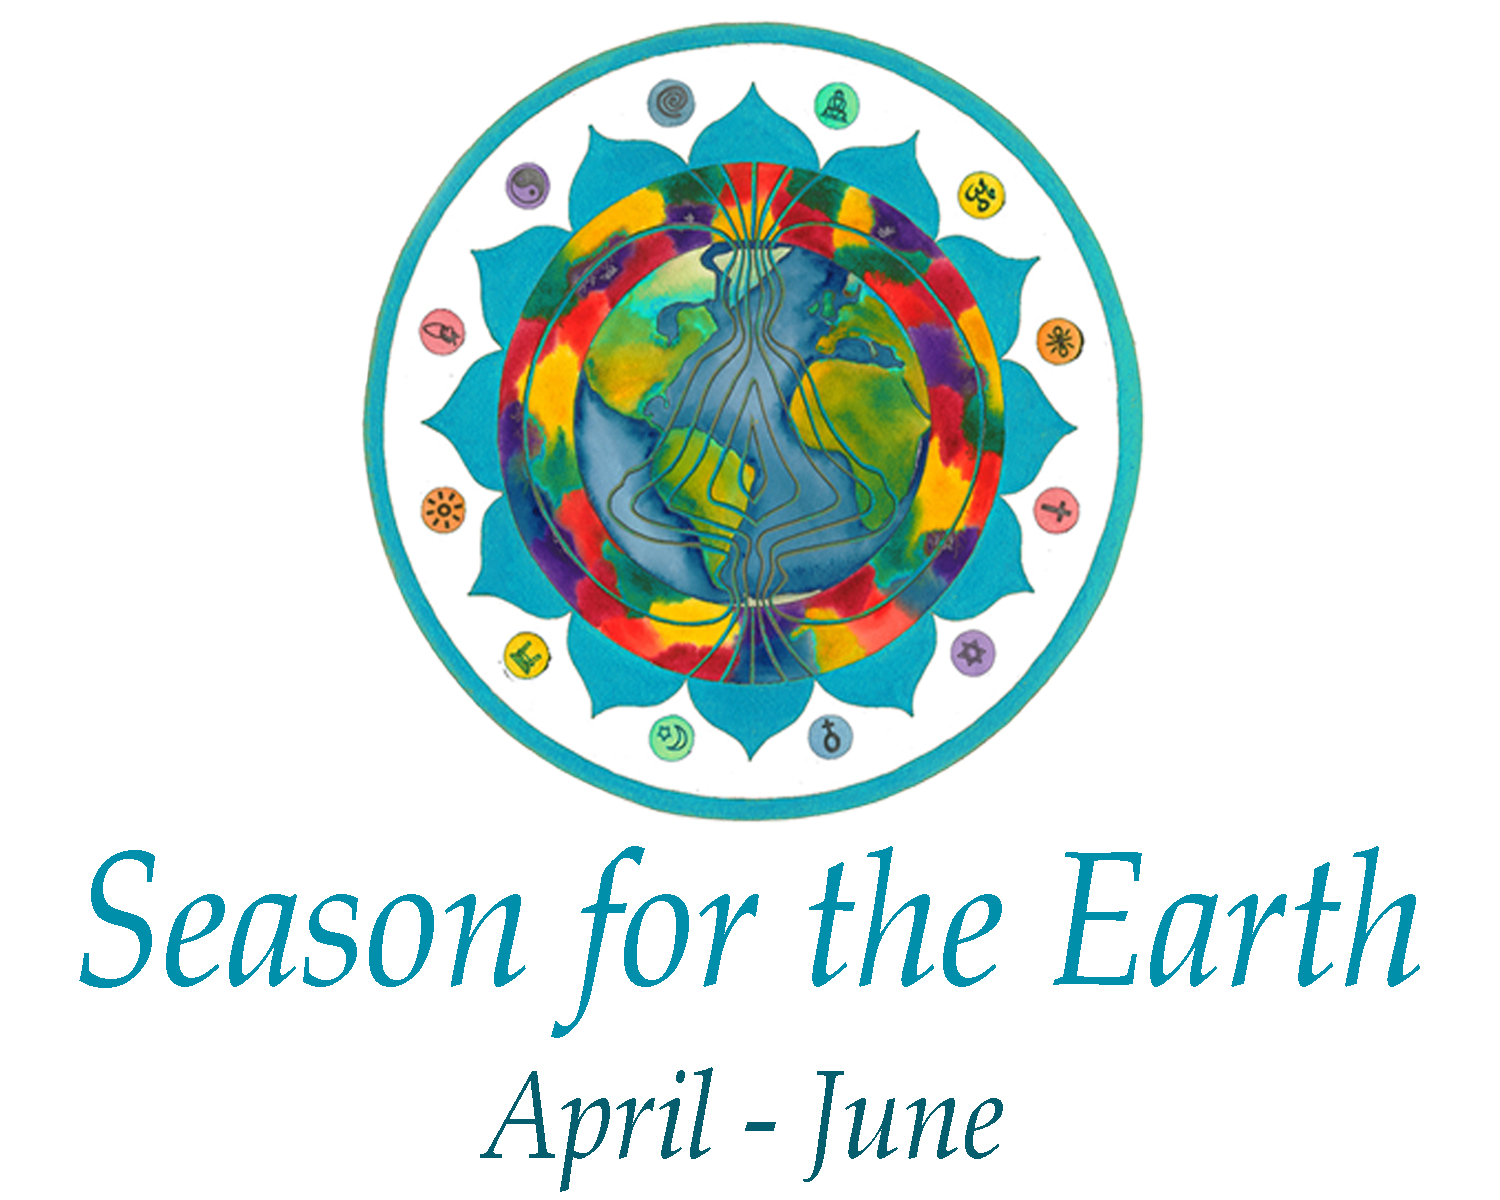 Season for the Earth